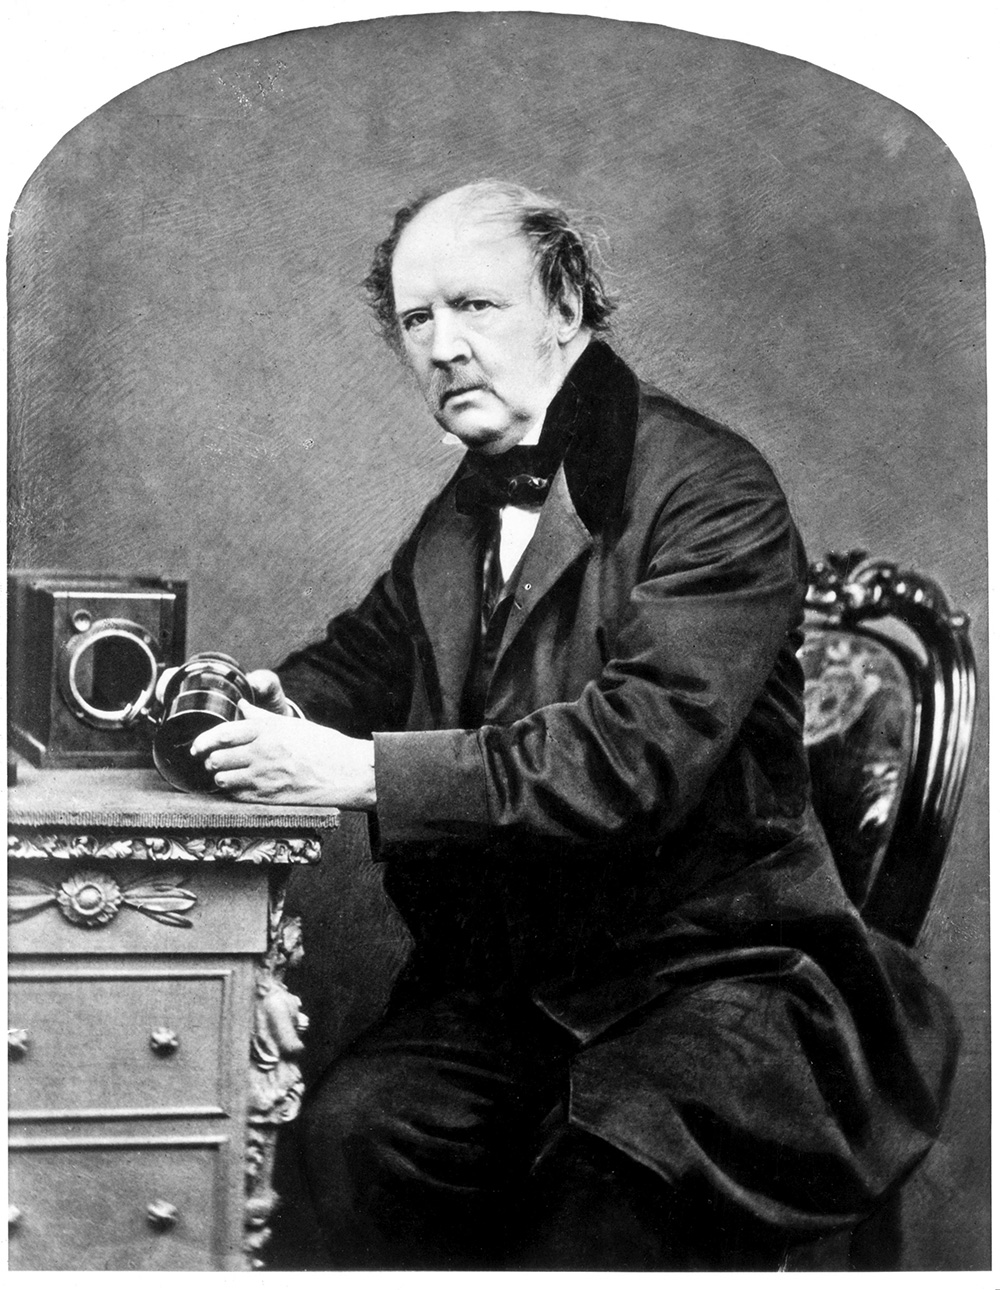 calotype vs daguerreotype Calotype is the negative pros: on paper, there is a negative & a positive, larger, more business cons: fuzzier, takes time negative and paper are held together and exposed, can take mins or hours (talbot 45 mins.